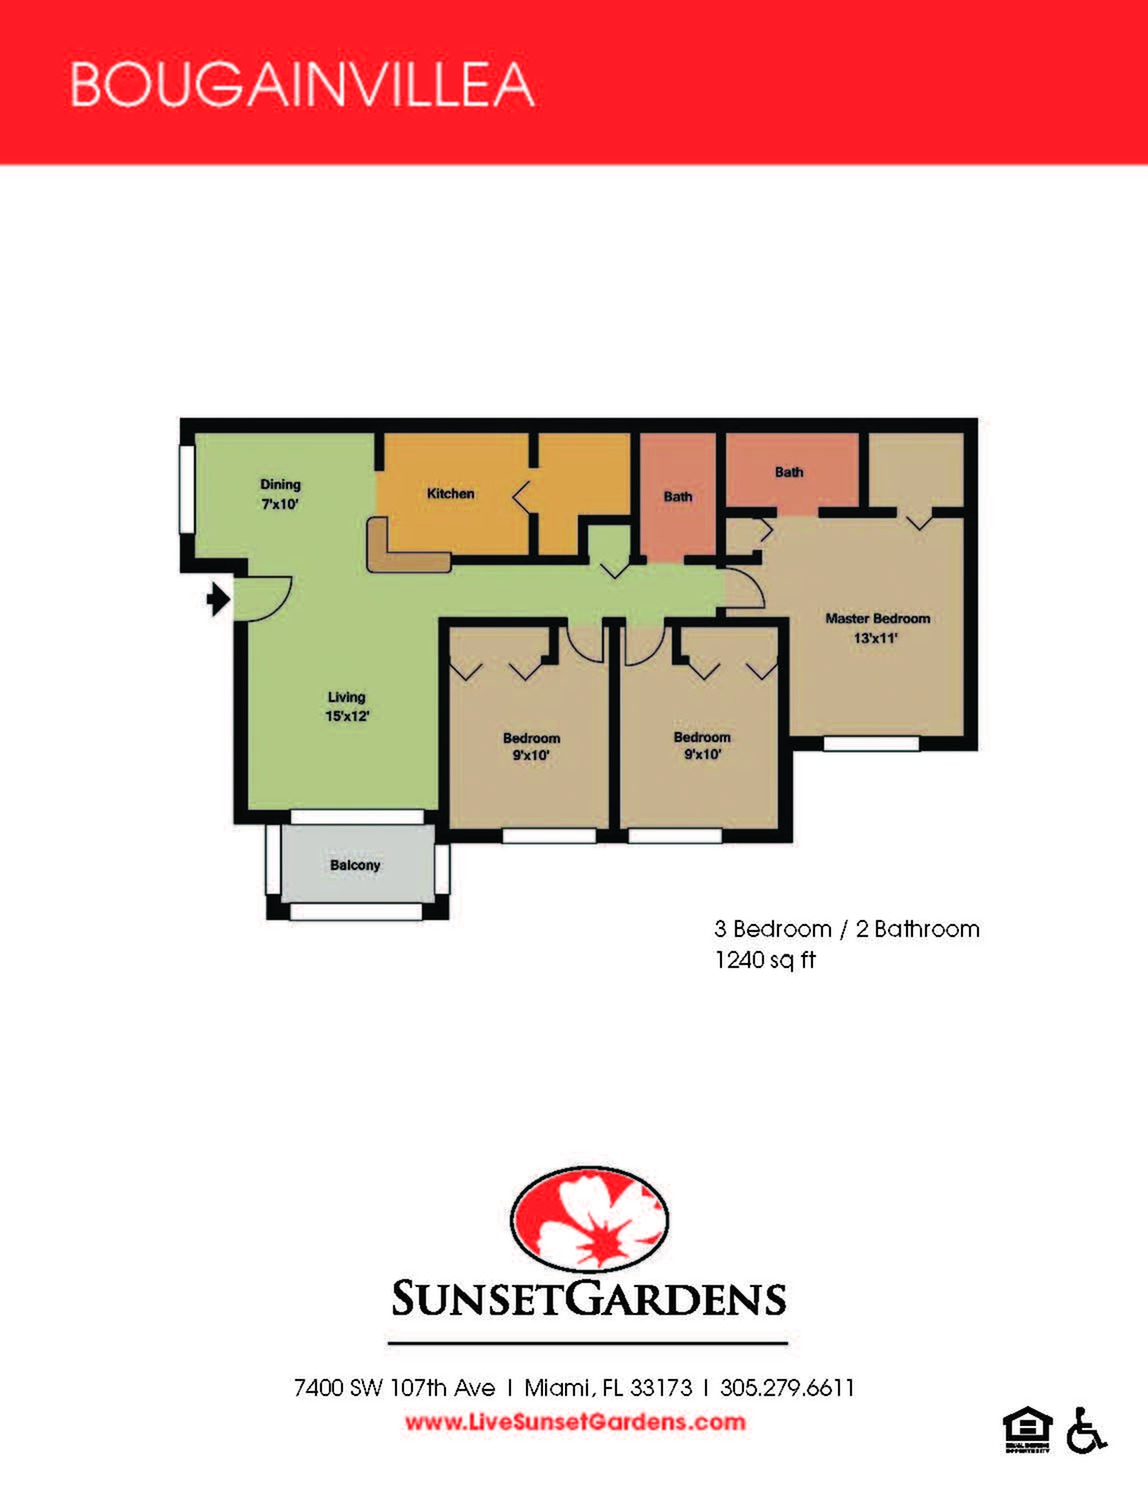 Bougainvillea upgraded three bedroom two bathroom floor plan